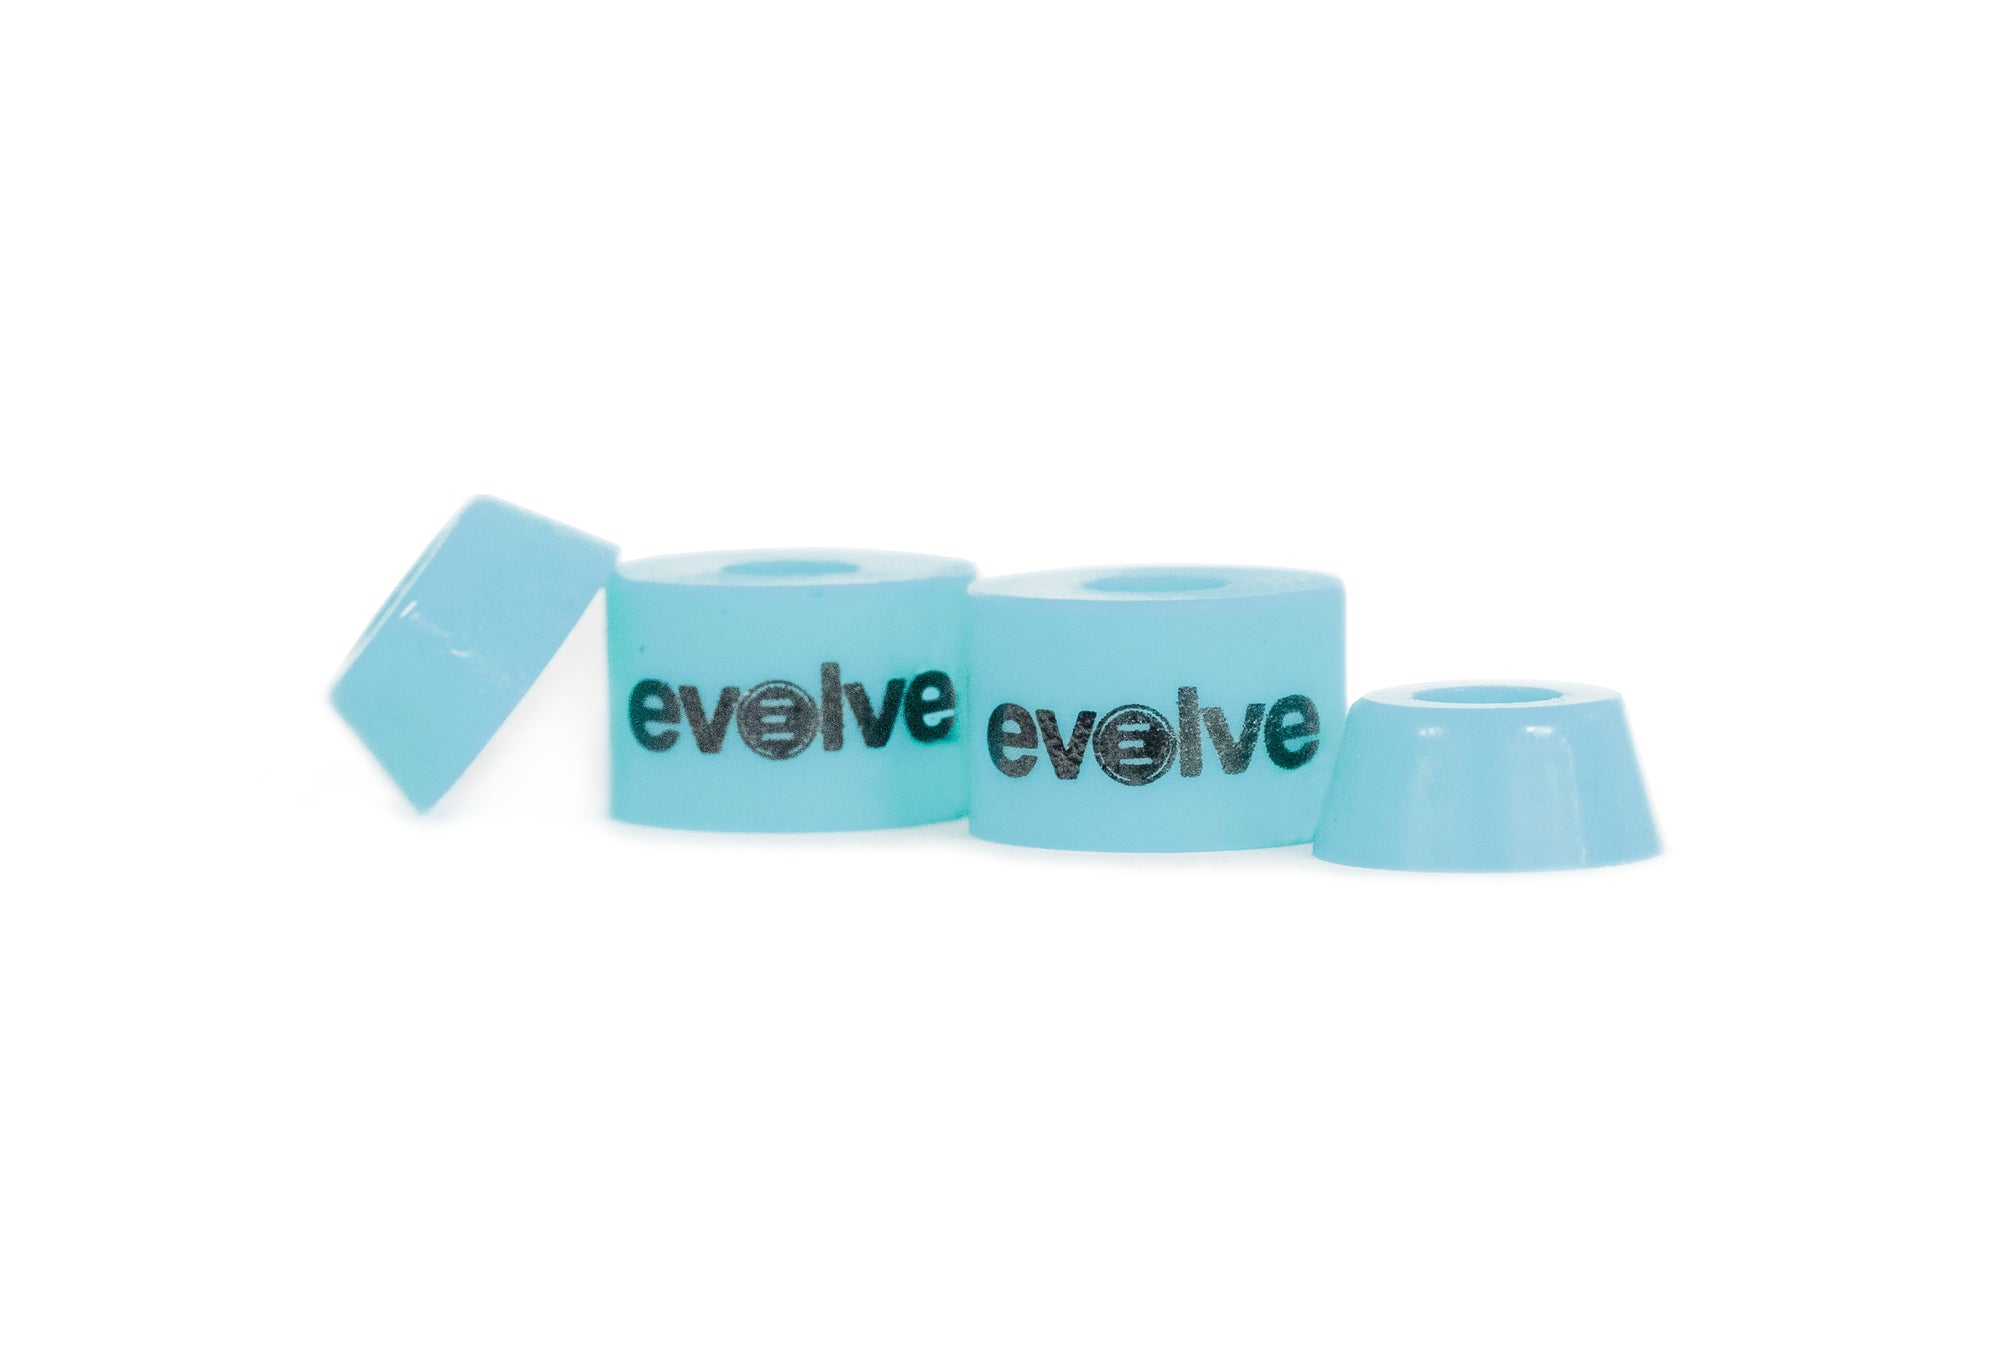 Set Bushings de Alto performance Evolve